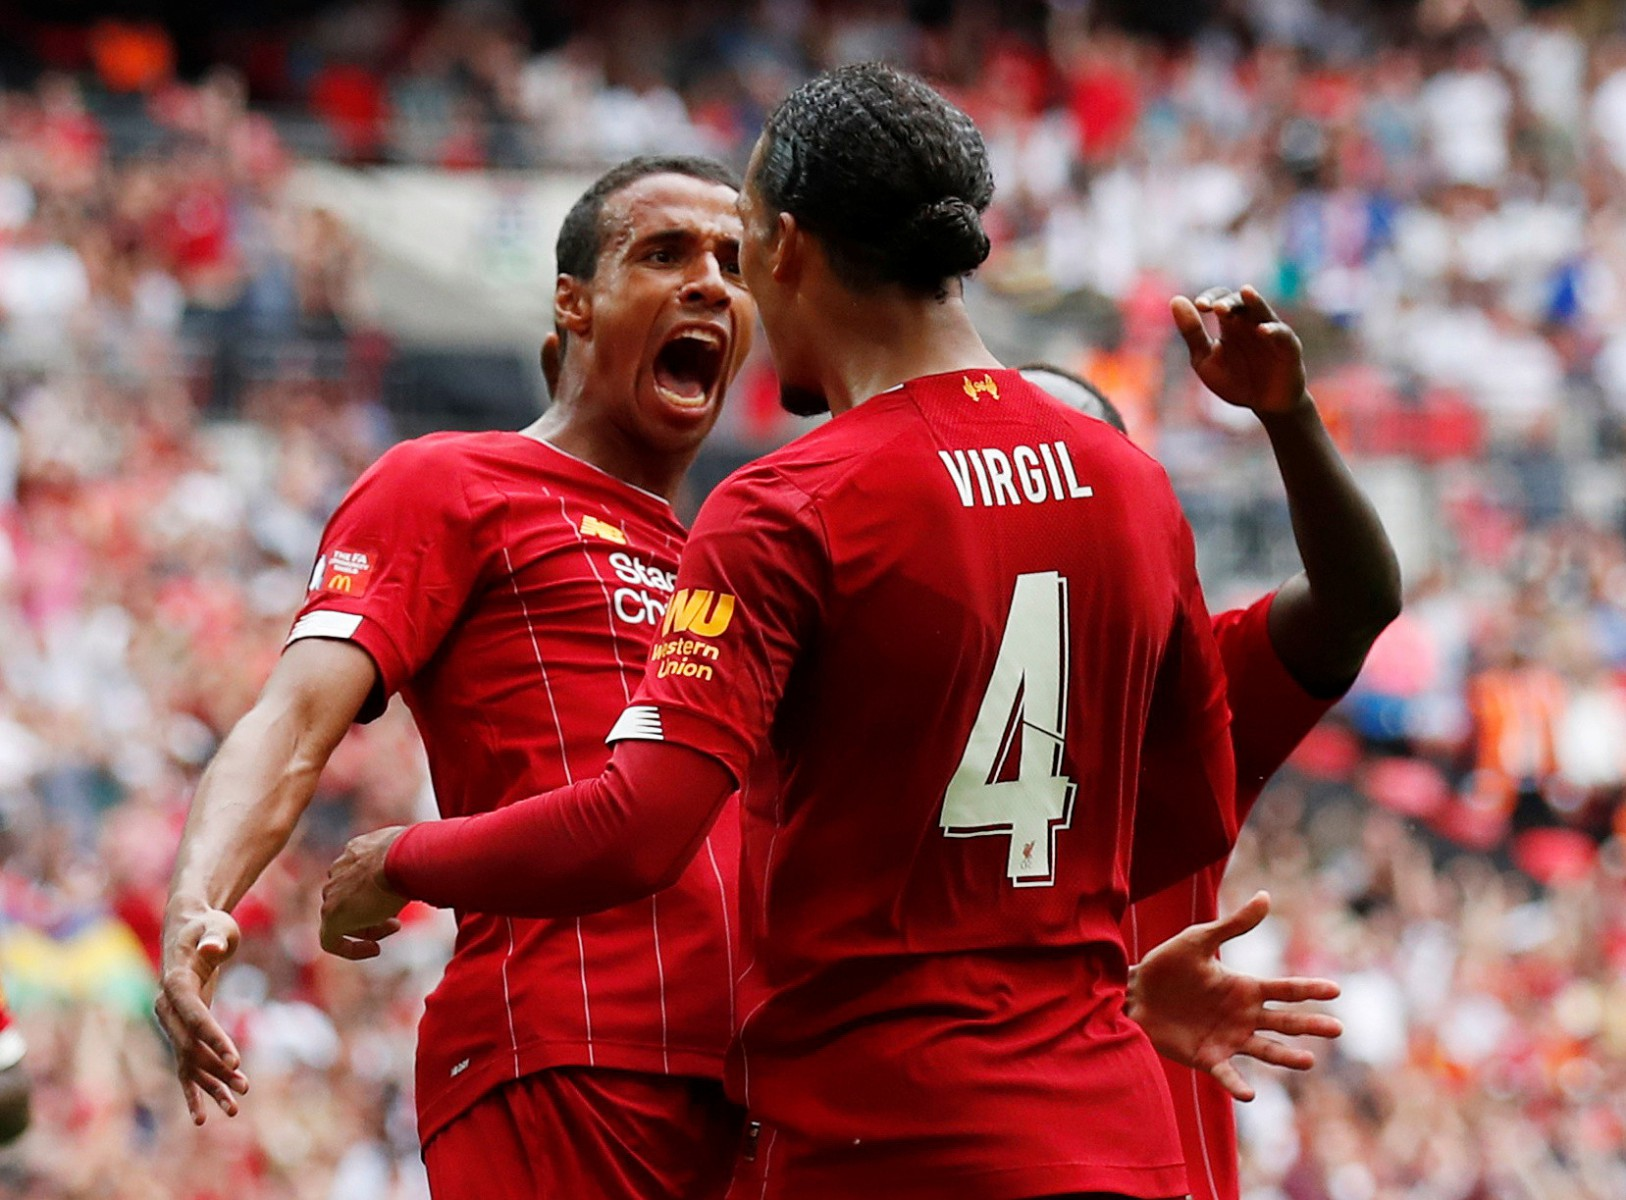 Joel Matip is currently the first-choice partner for Virgil van Dijk with Gomez frozen out